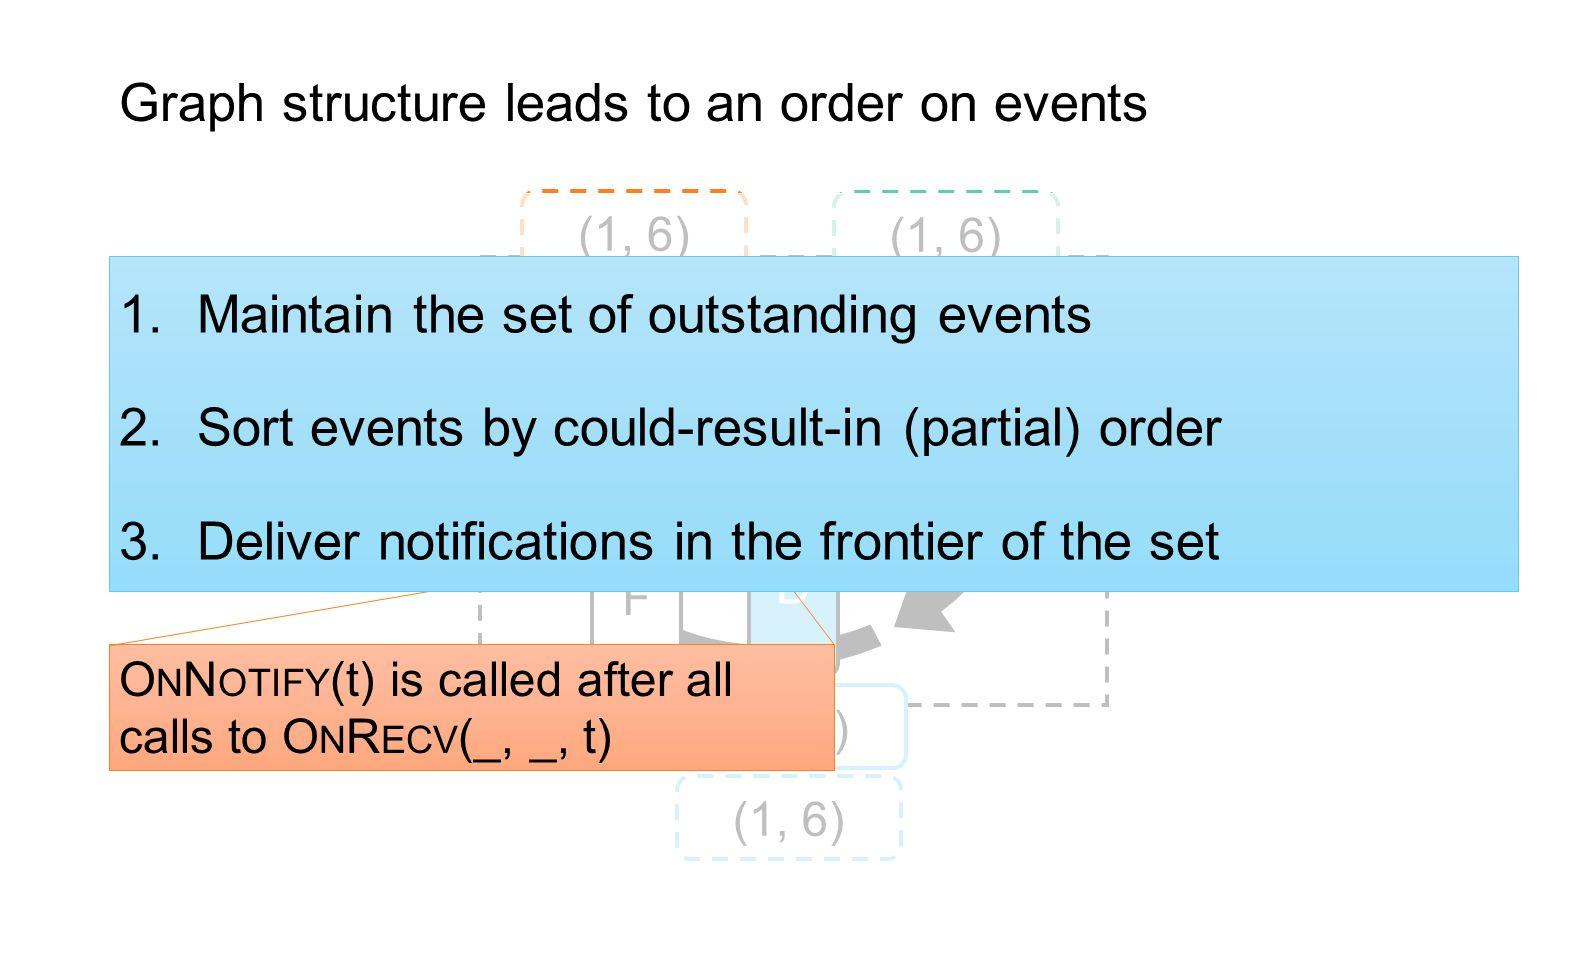 Graph structure leads to an order on events